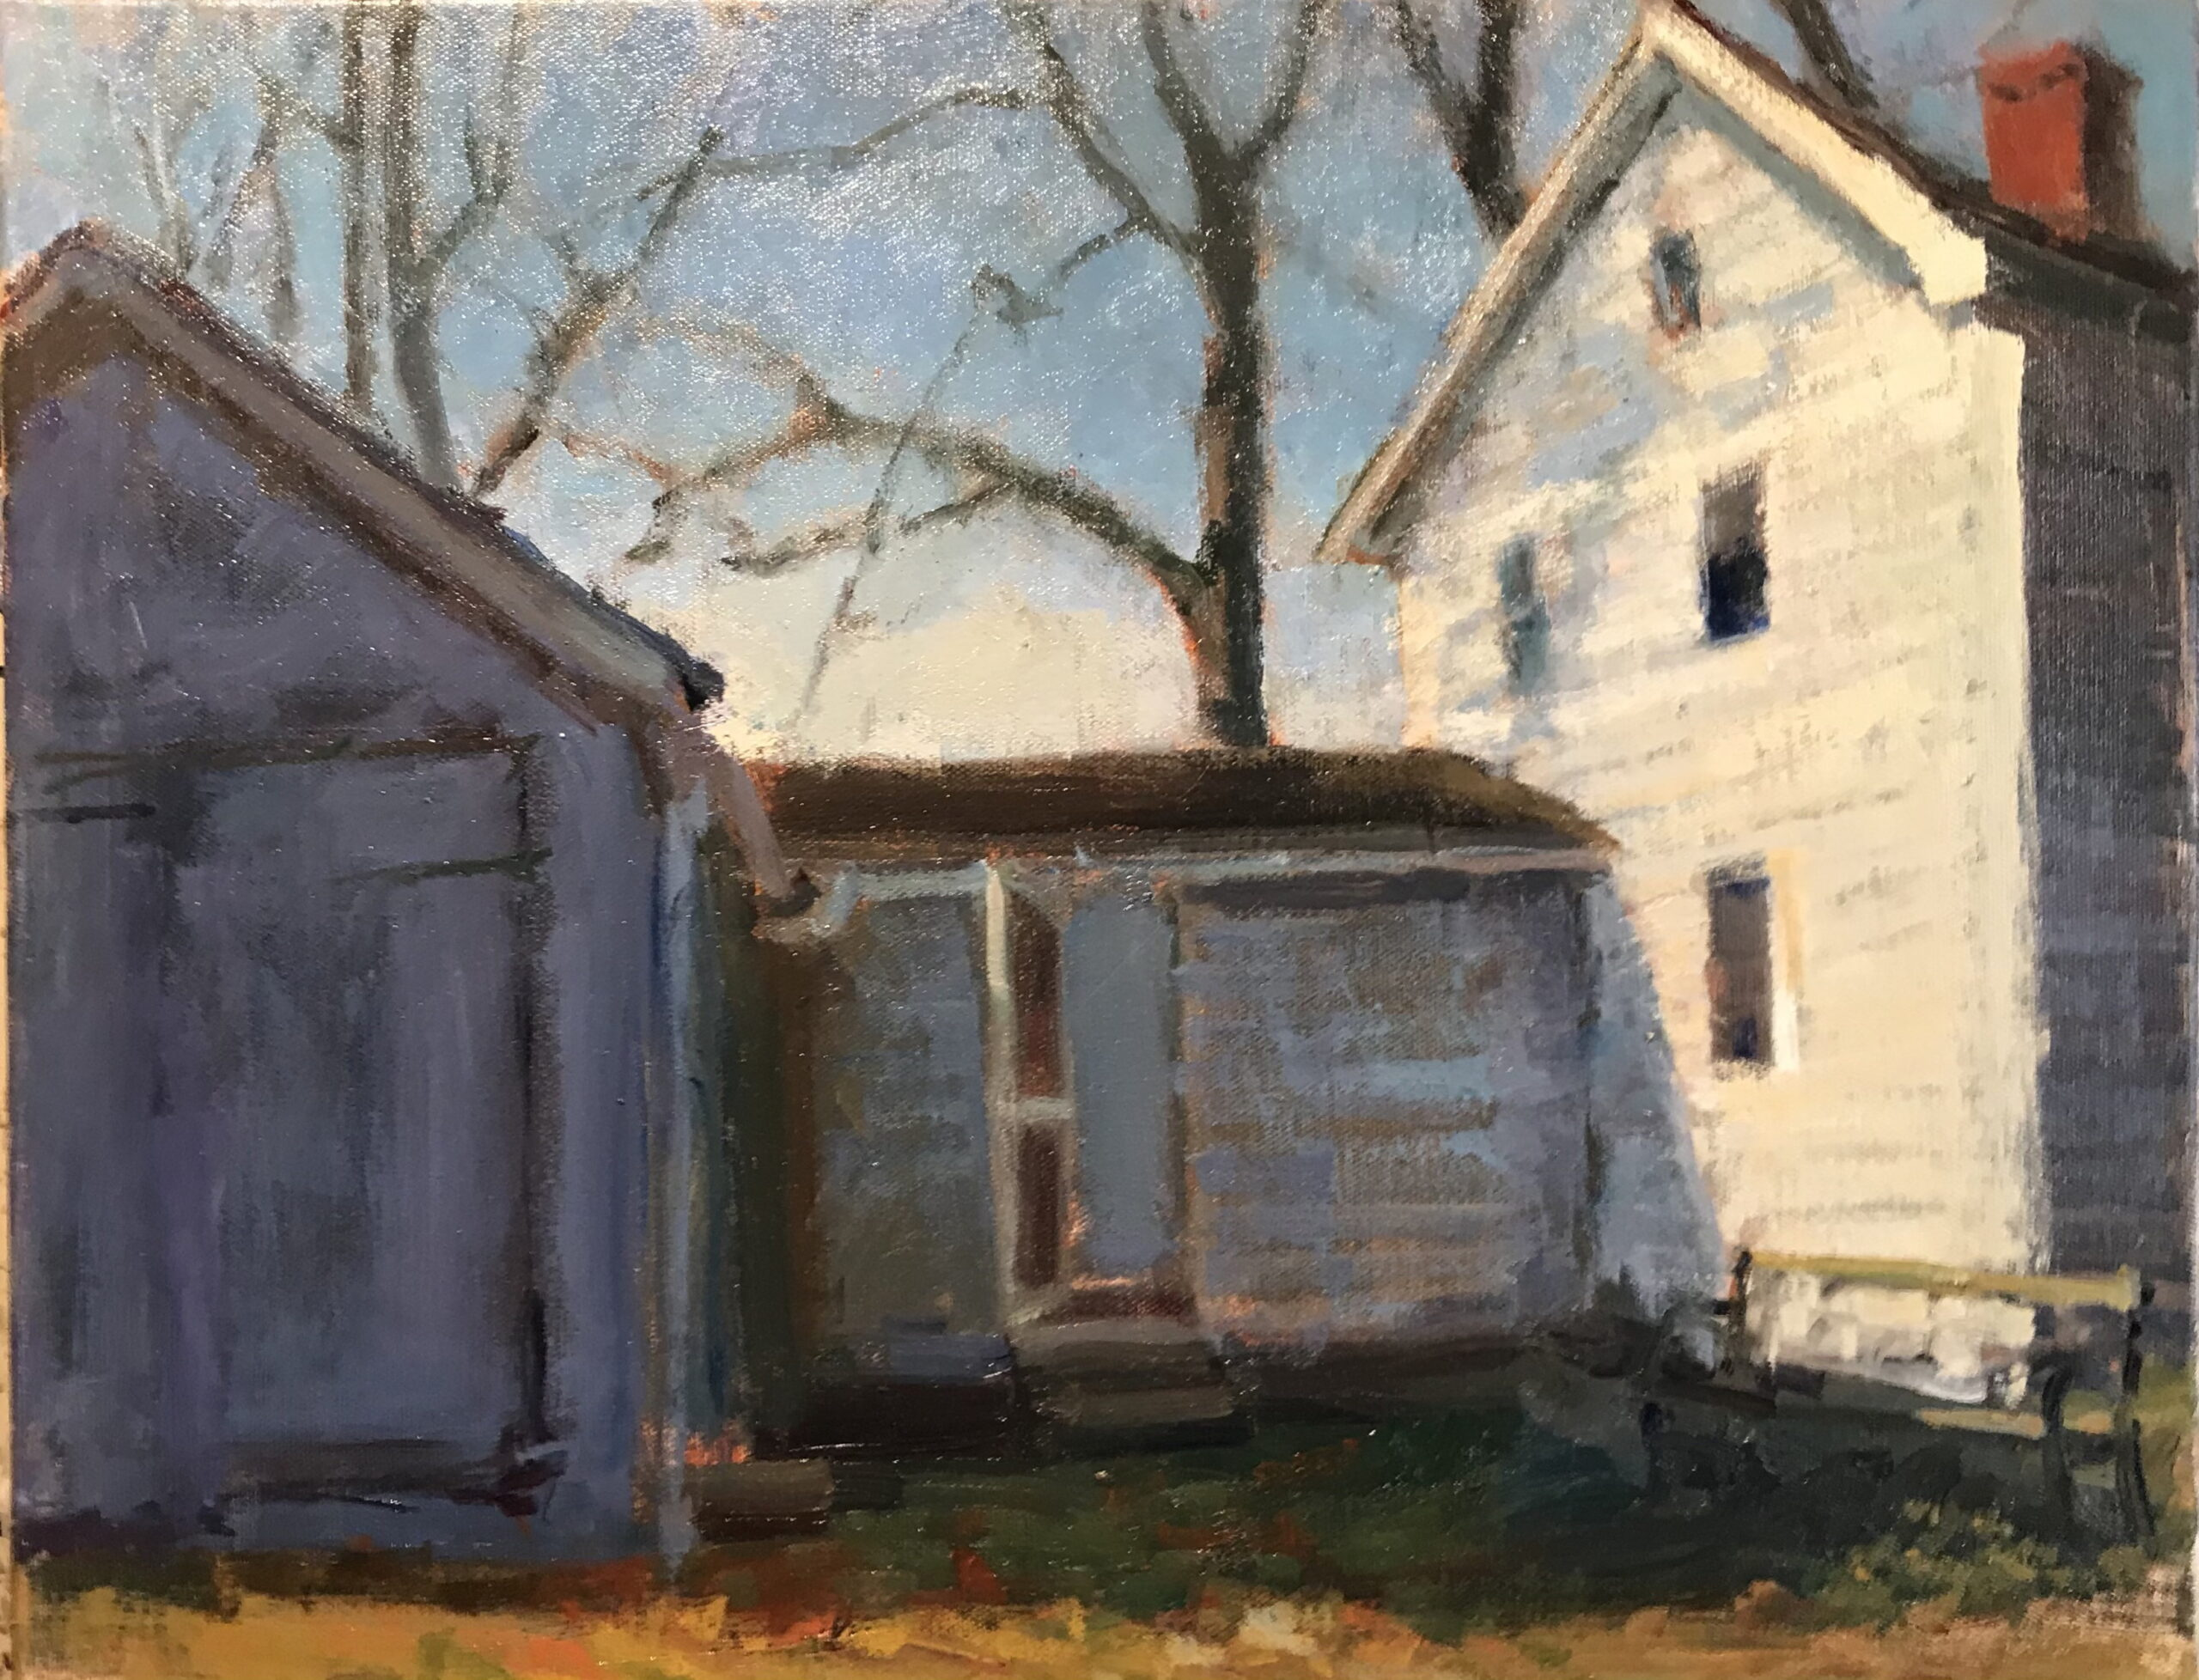 November, Oil on Canvas, 16 x 20 Inches, by Susan Grisell, $550